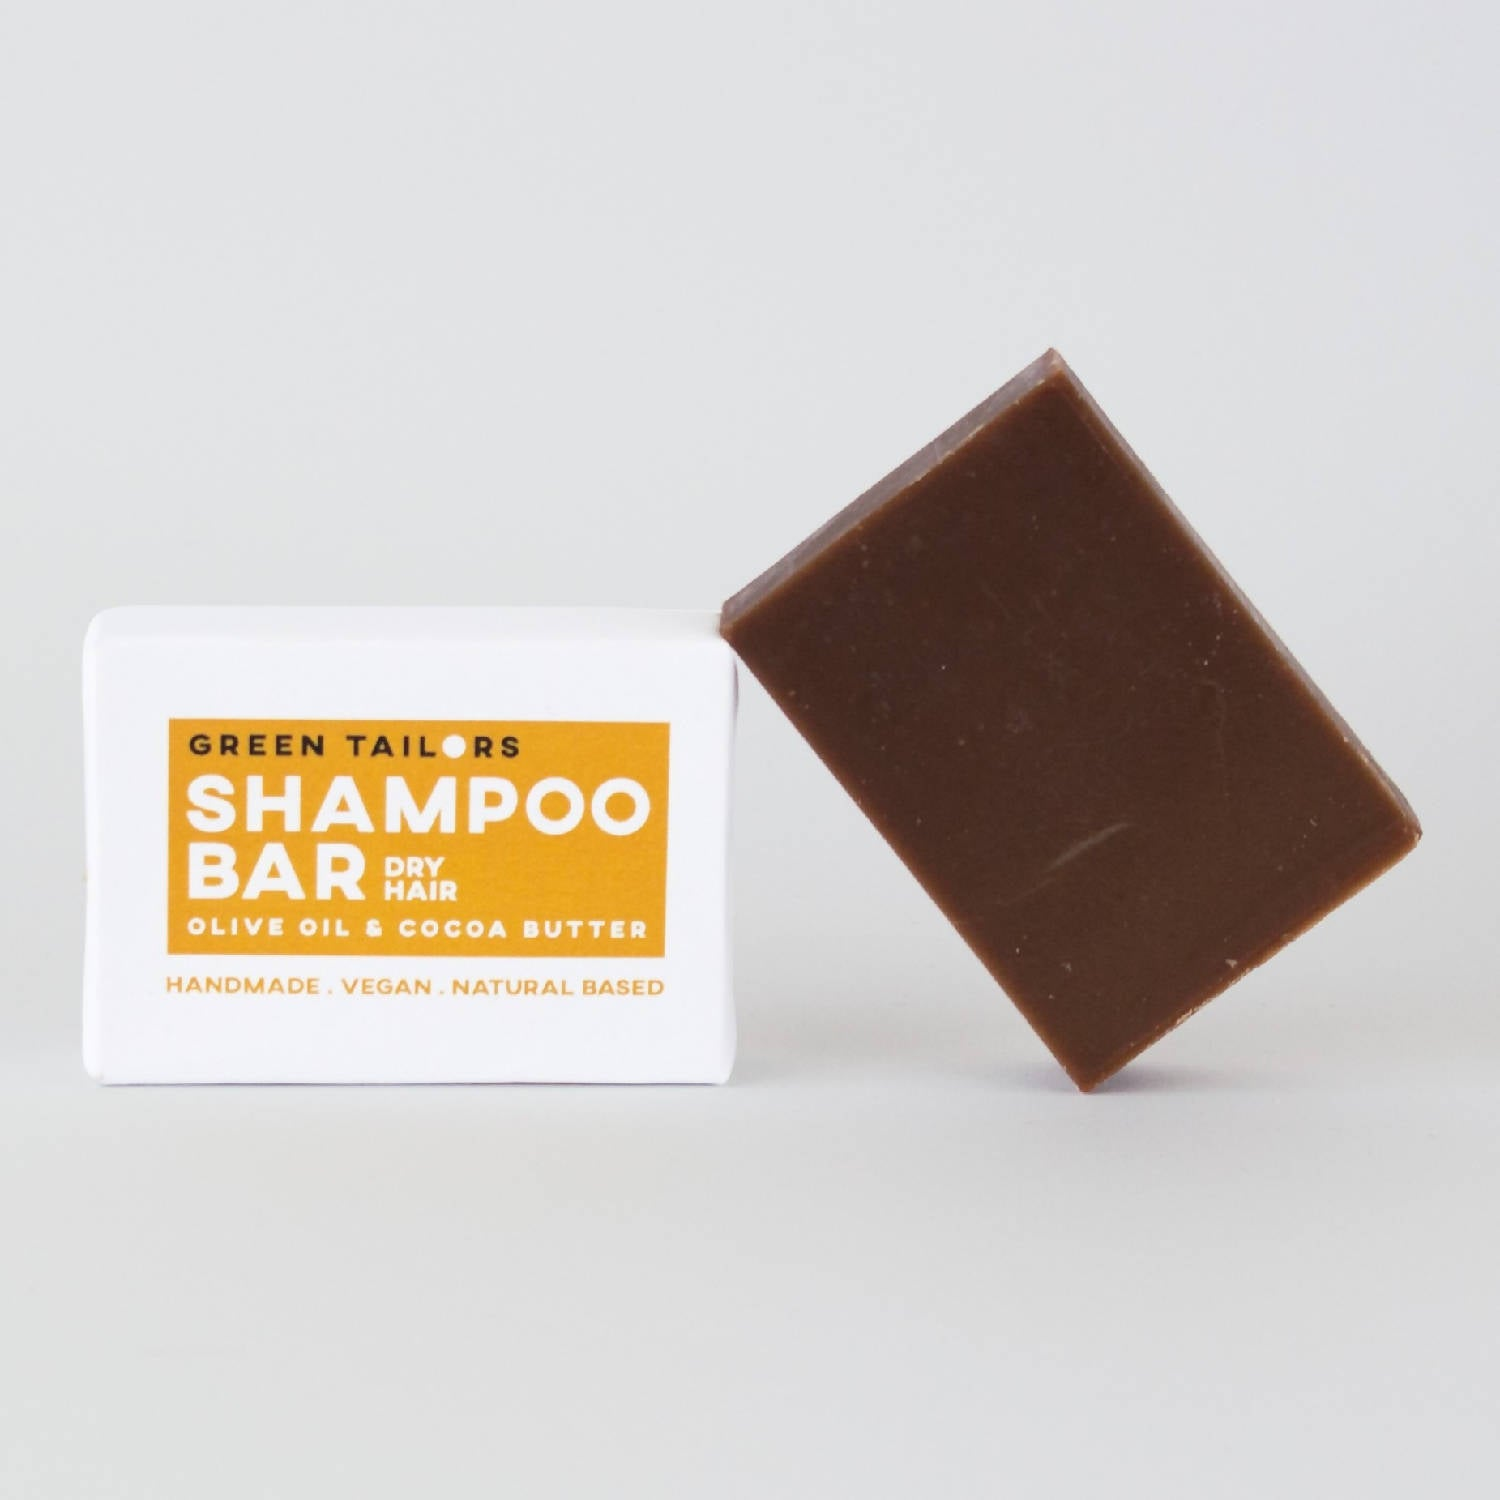 SHAMPOO BAR Dry Hair